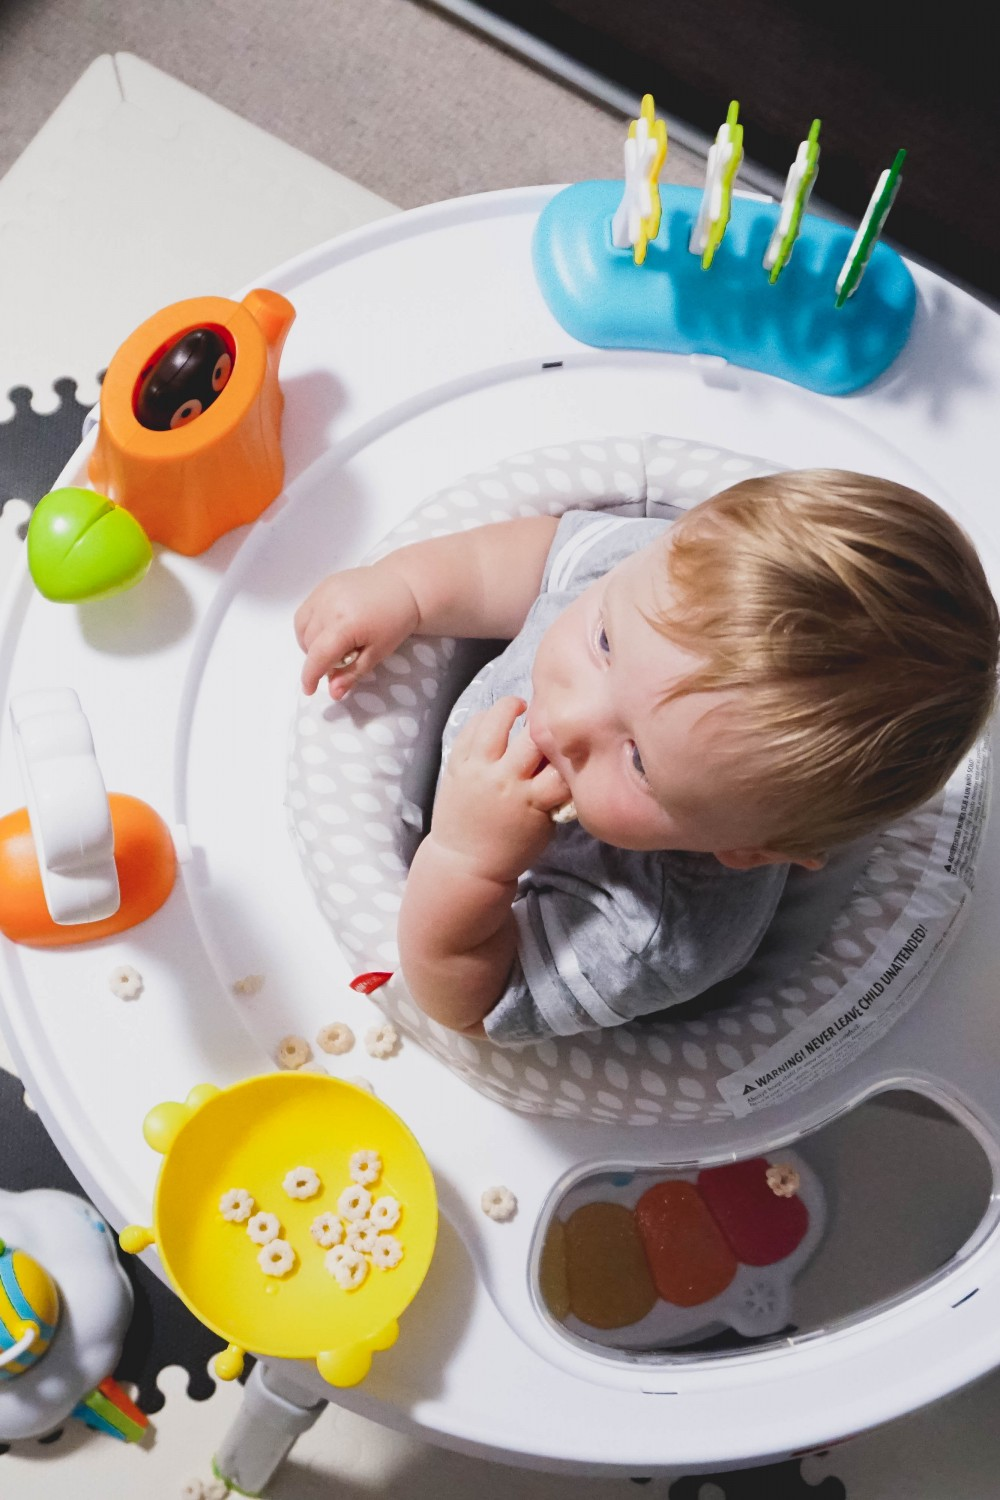 Playtime fun with Skip Hop-Skip Hop Floor Mats-Activity Gym-Mason's 10 Month Update-Motherhood-Have Need Want at Home 10